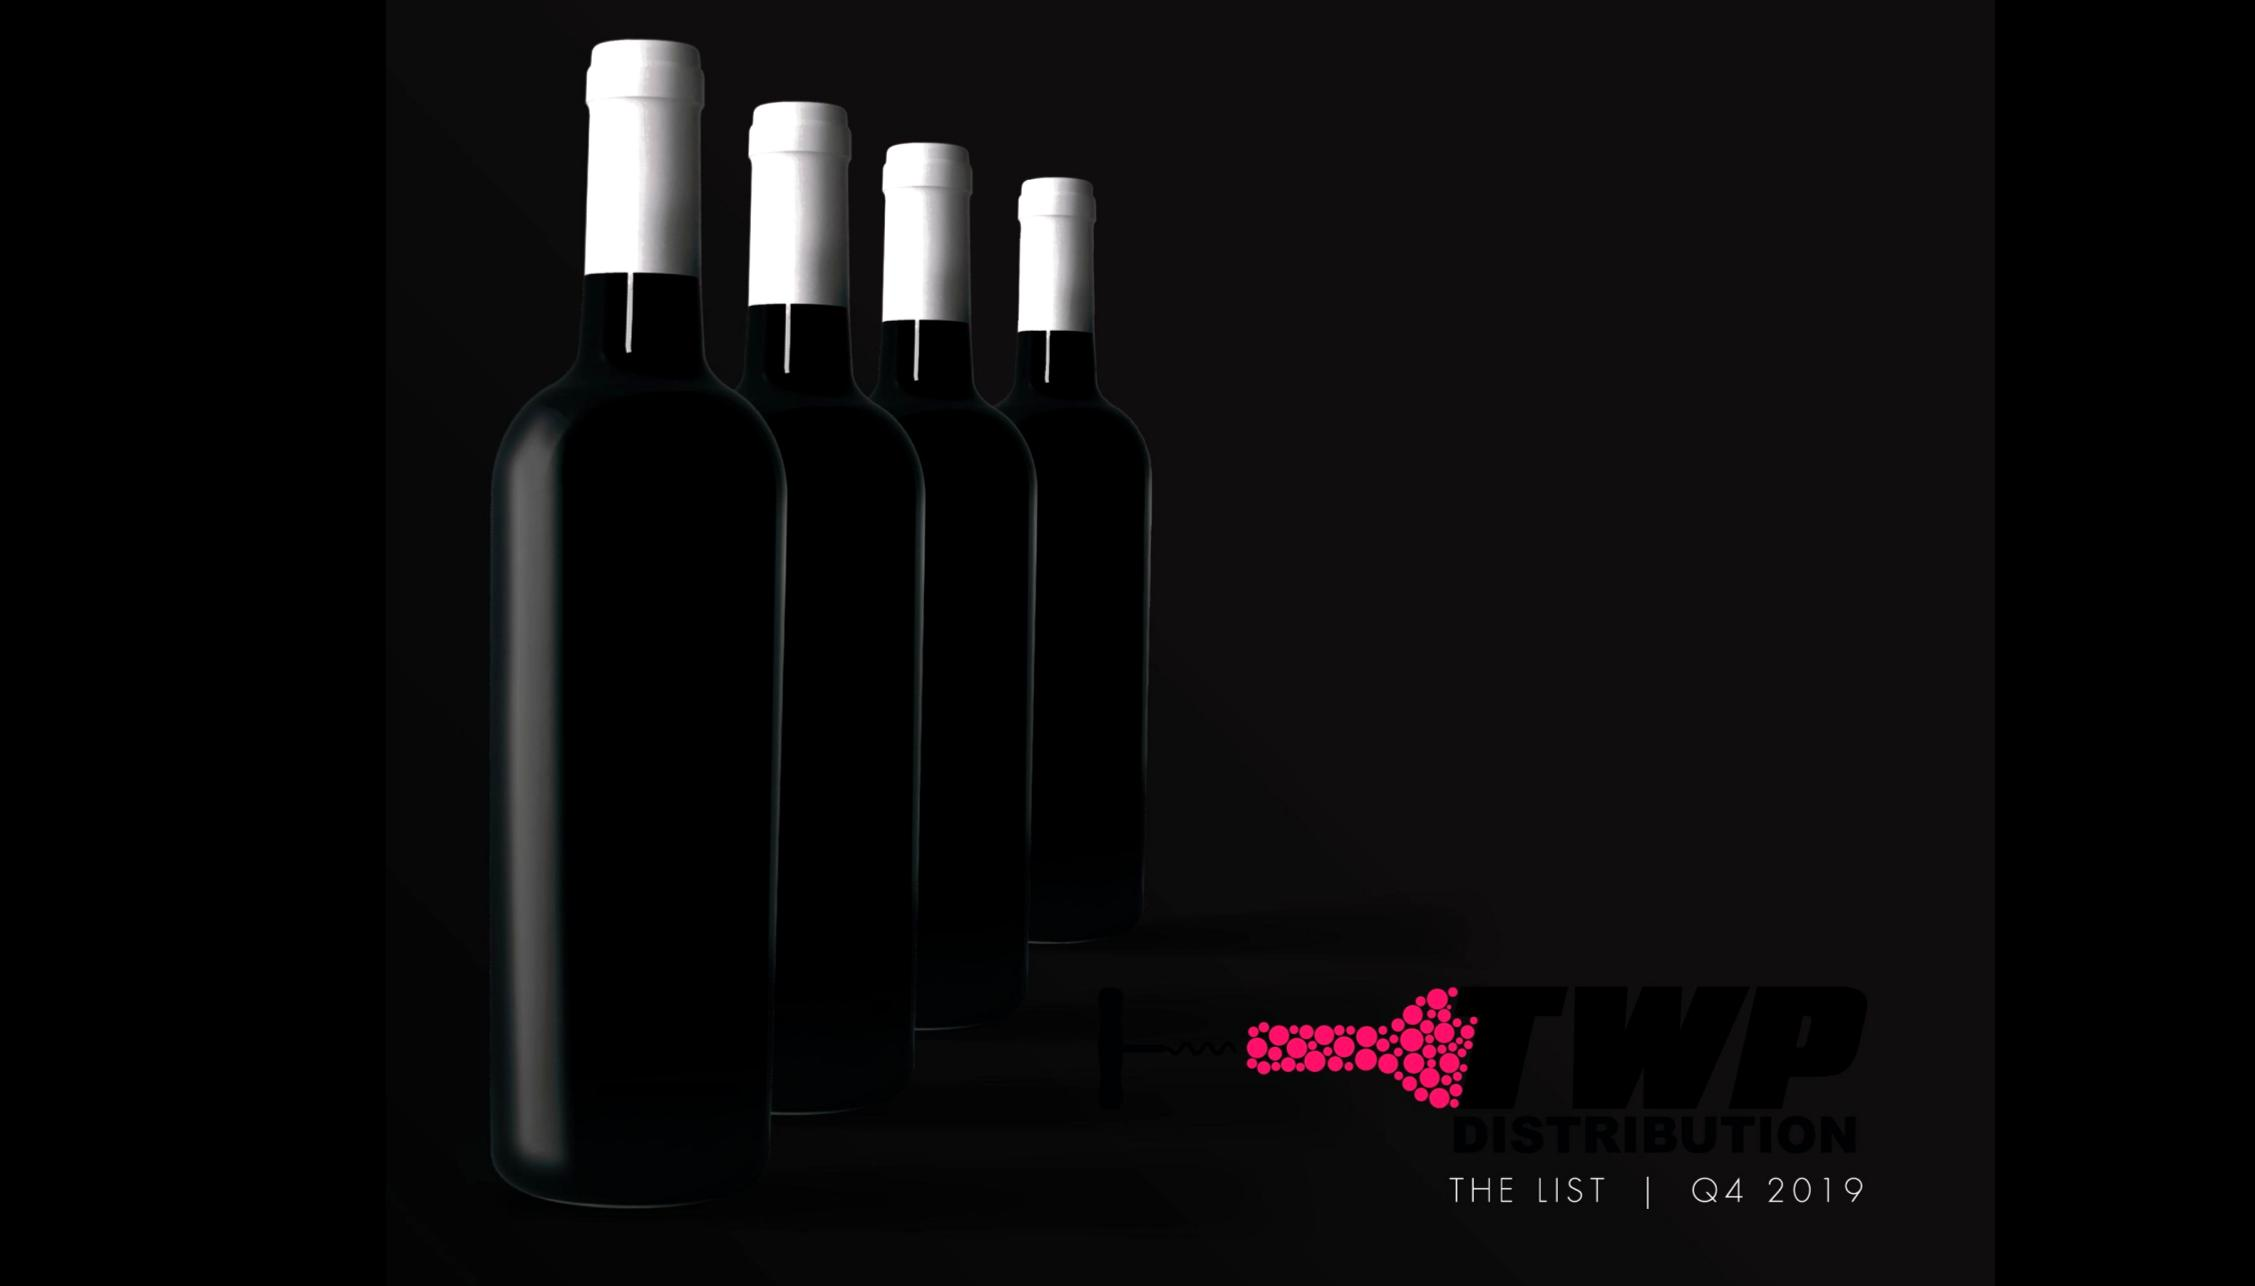 THE WINE POOR DISTRIBUTION 2019 Q4 CATALOG